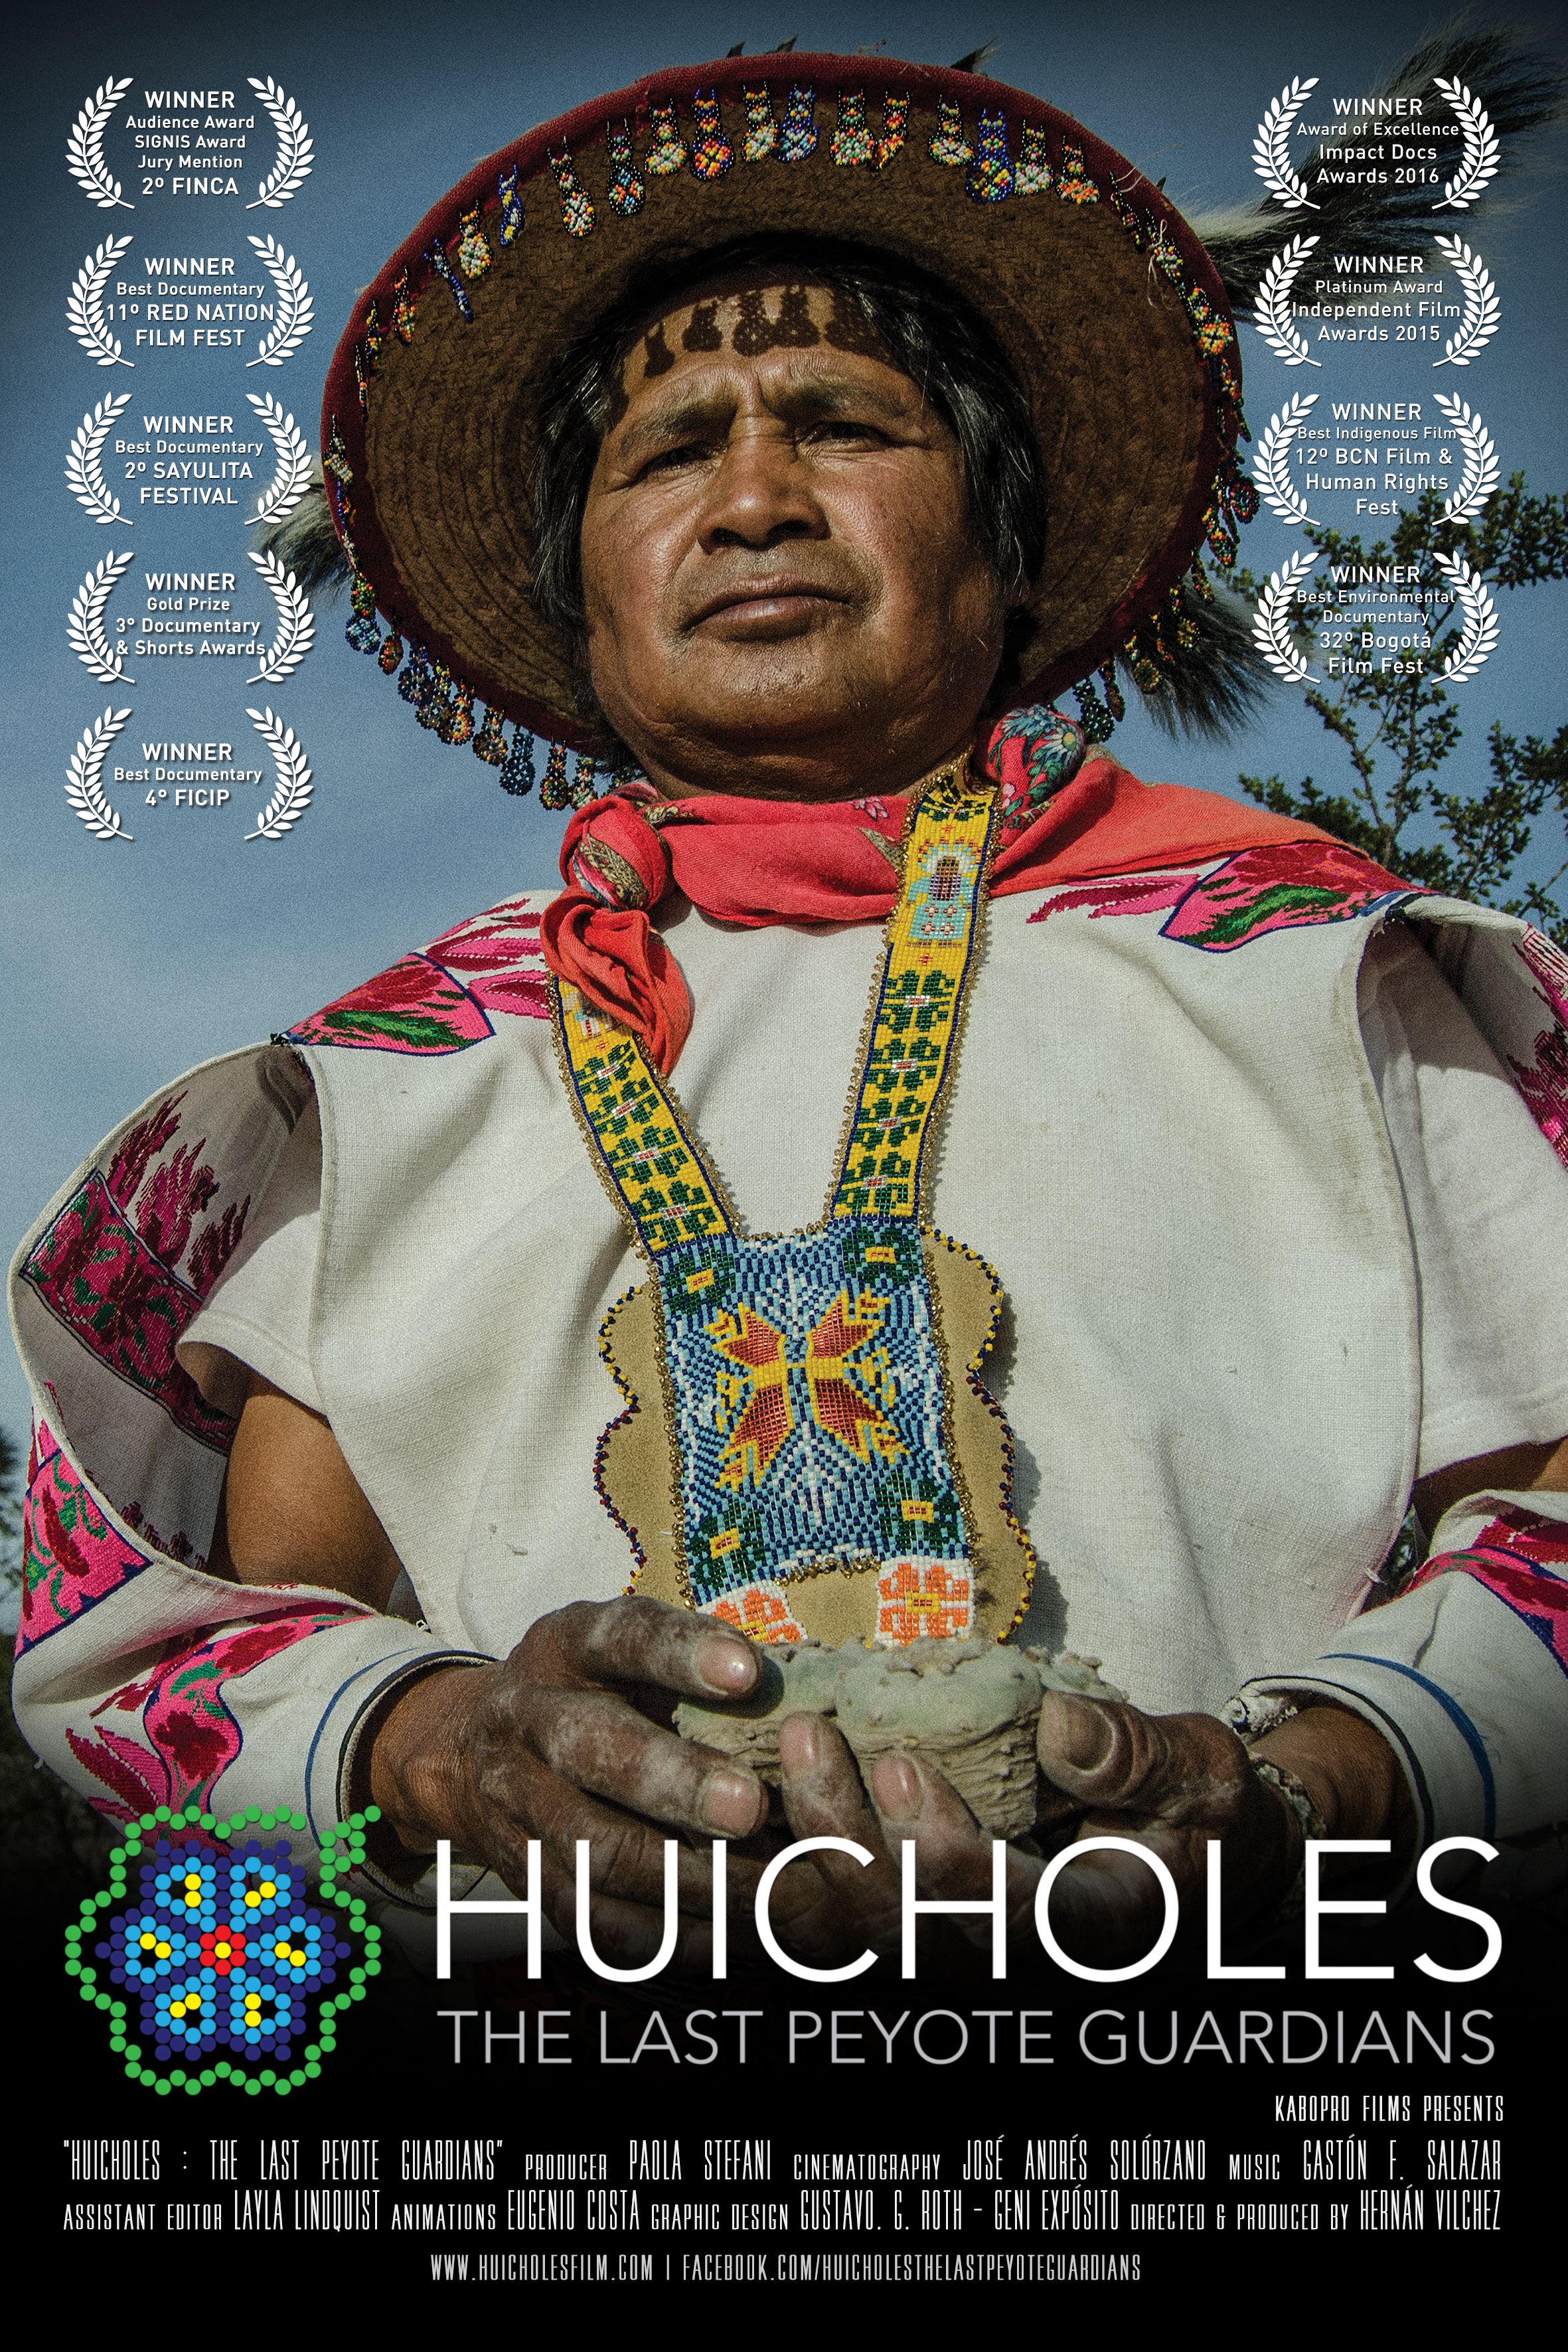 Gd Usa Award 2016 In House Design: Huicholes: The Last Peyote Guardians